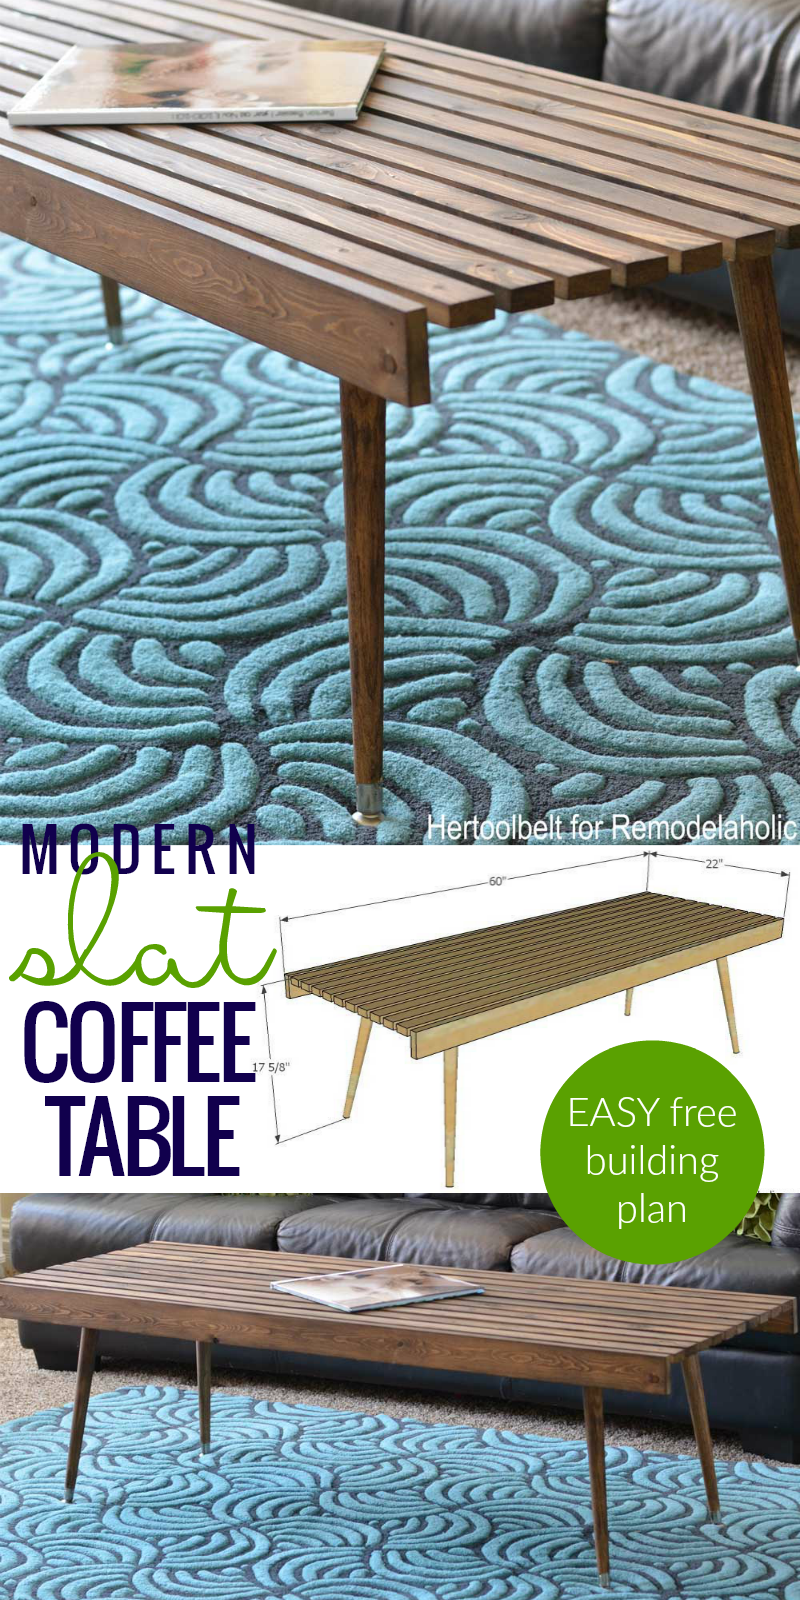 Free Building Plan Easy Modern Slat Coffee Table Or Bench For Under